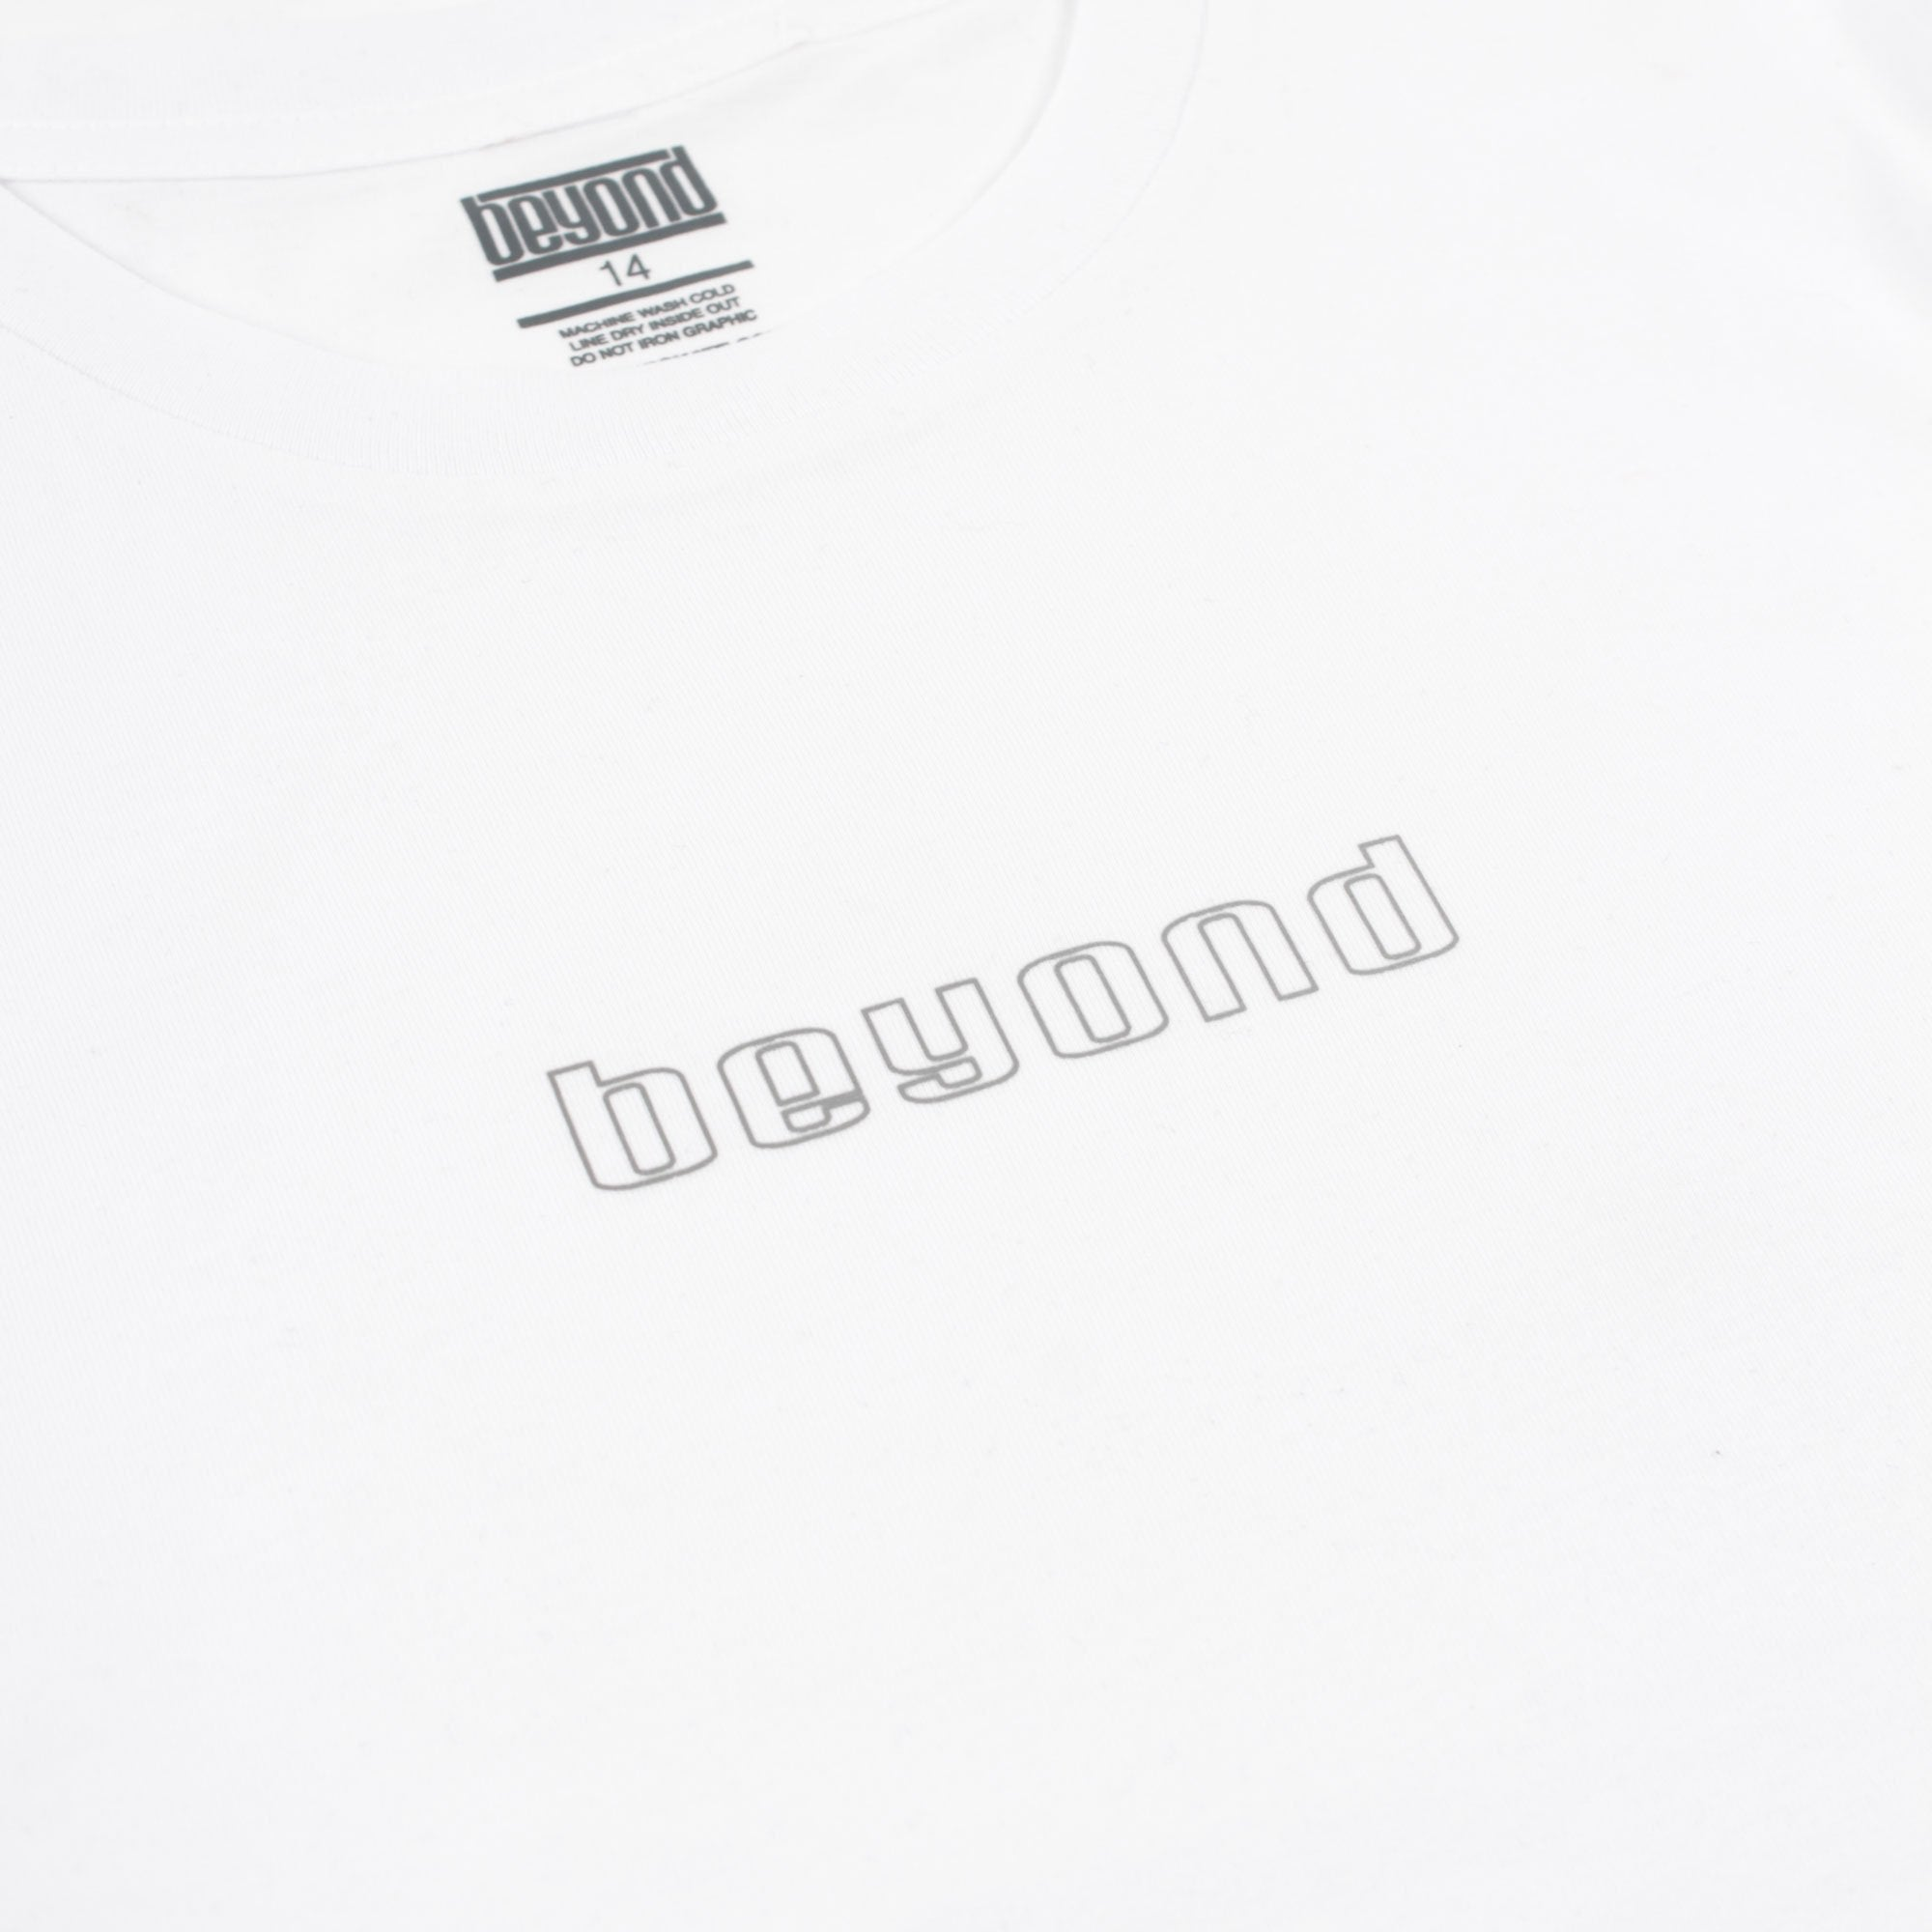 Beyond No Bars Tee (Youth) Product Photo #2